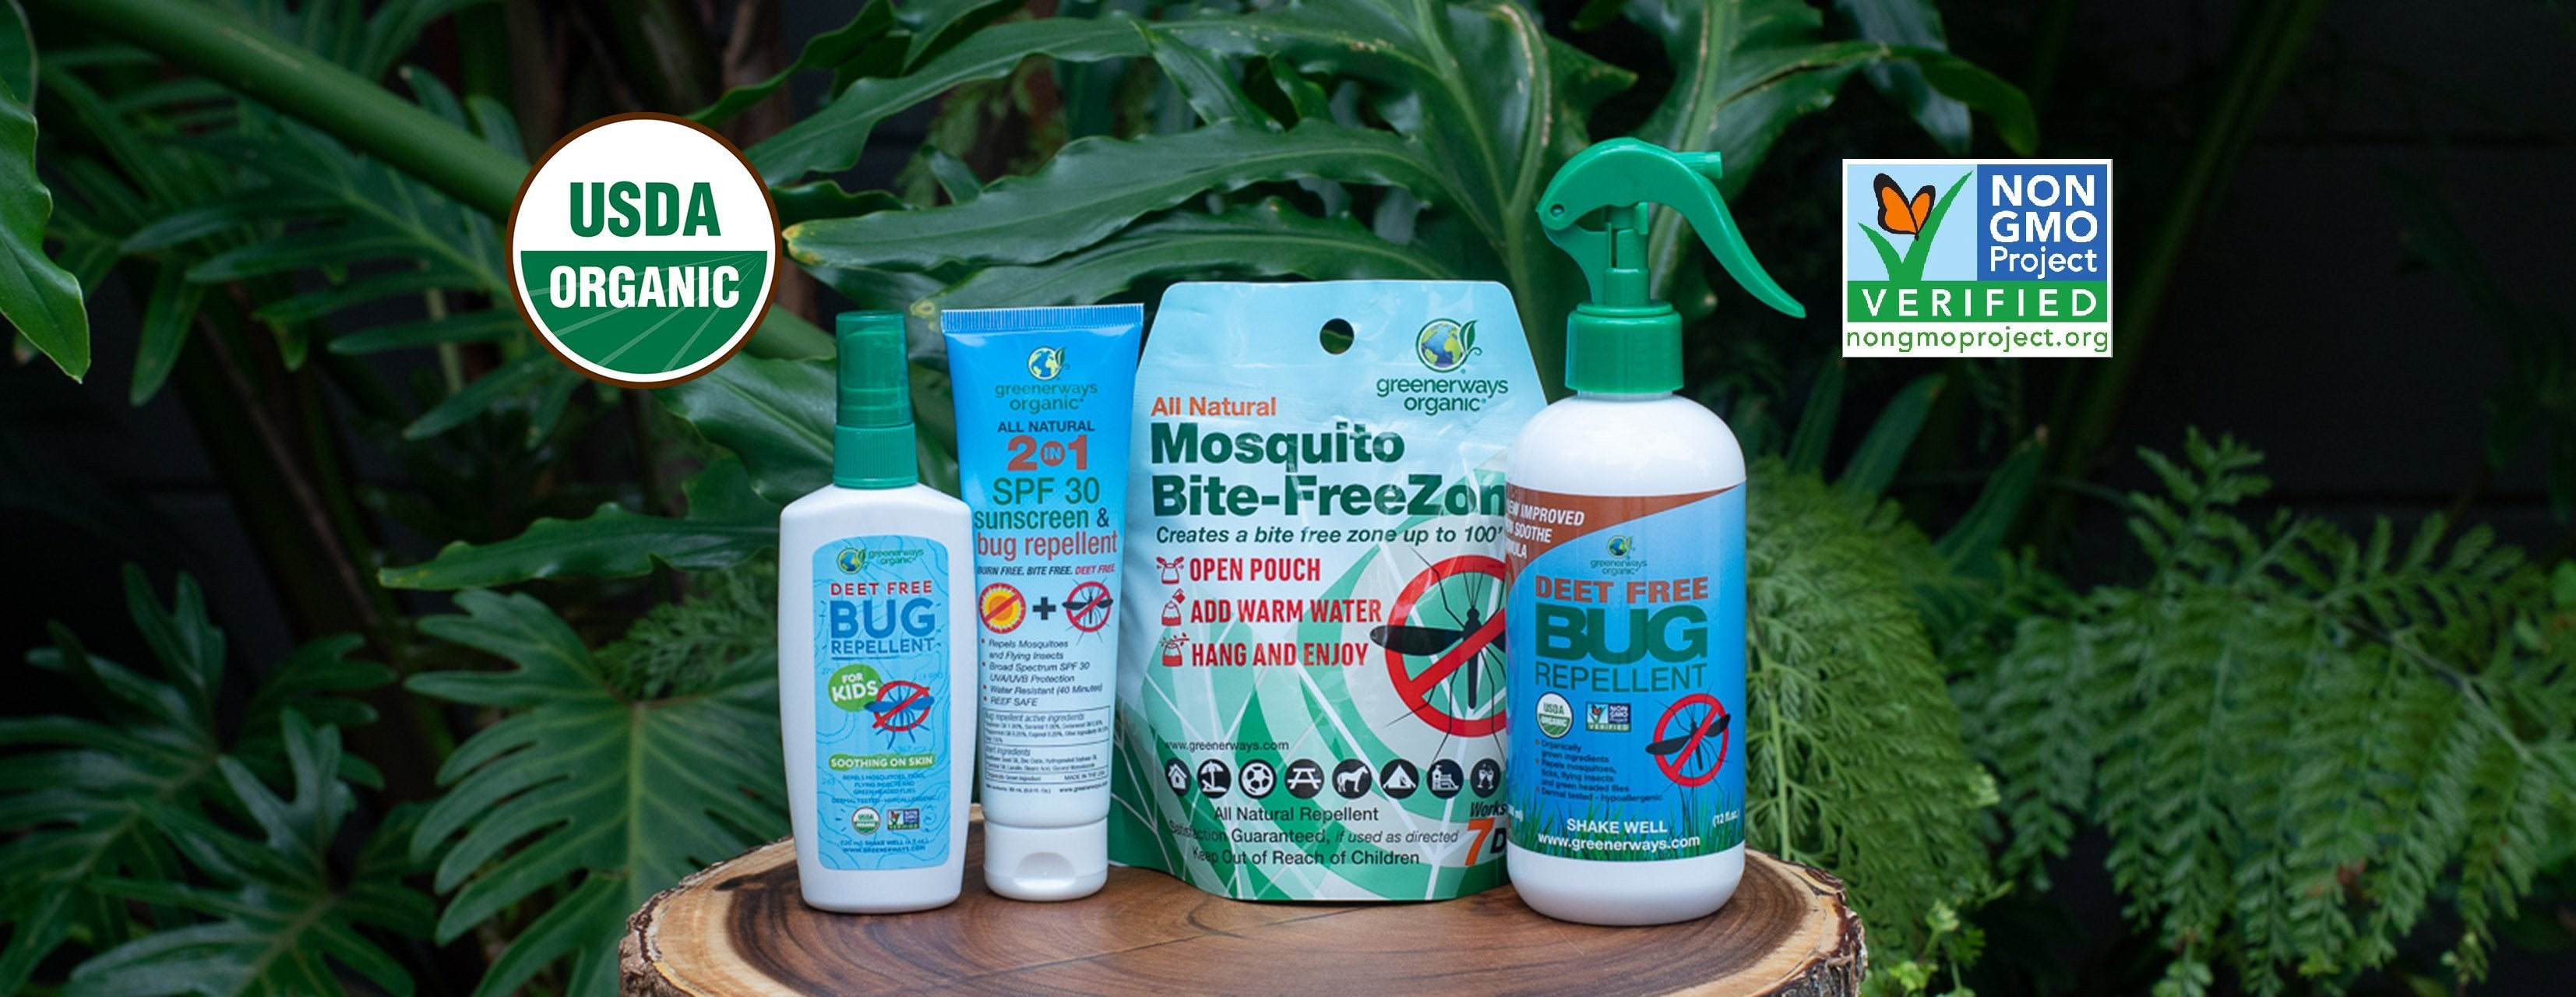 Turn your yard into a mosquito-free zone